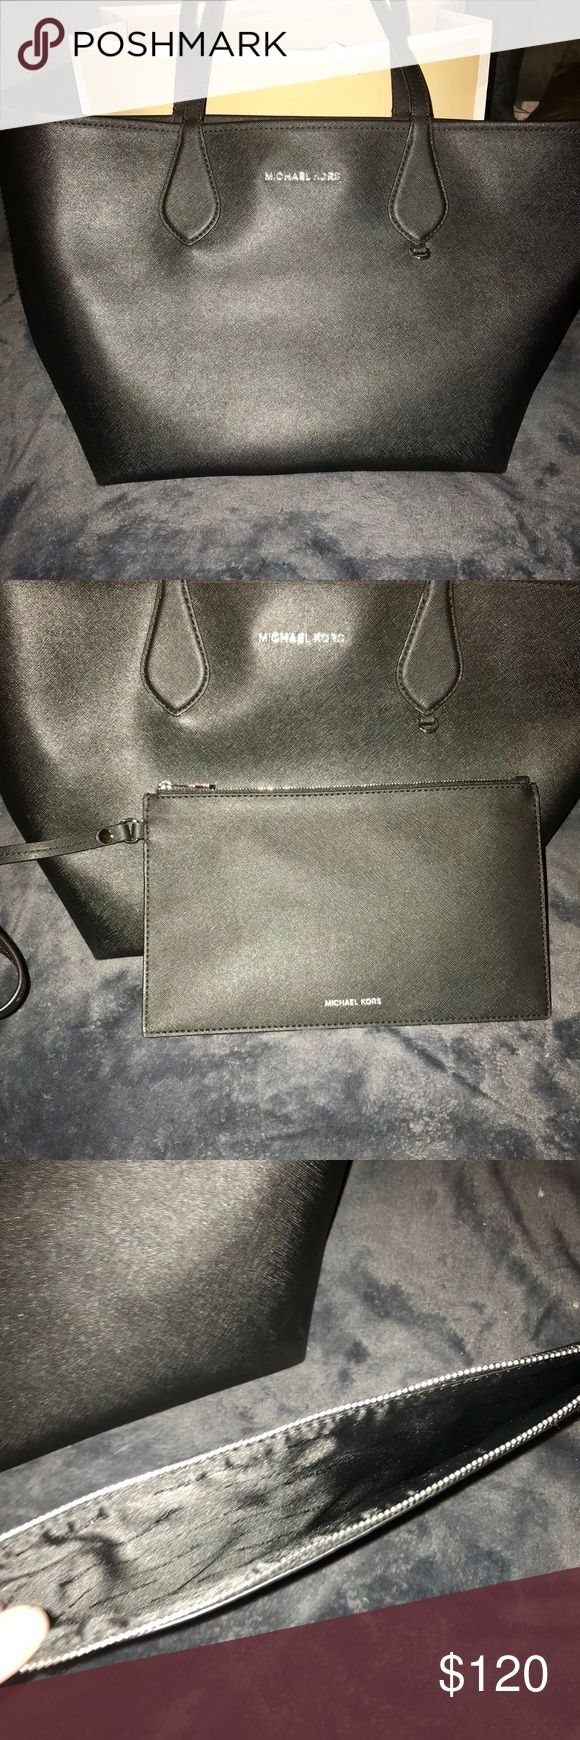 Michael Kors Saige medium tote New without tags! No wear in excellent condition. Medium tote with attachable wristlet. Black and gold Michael Kors Bags Totes